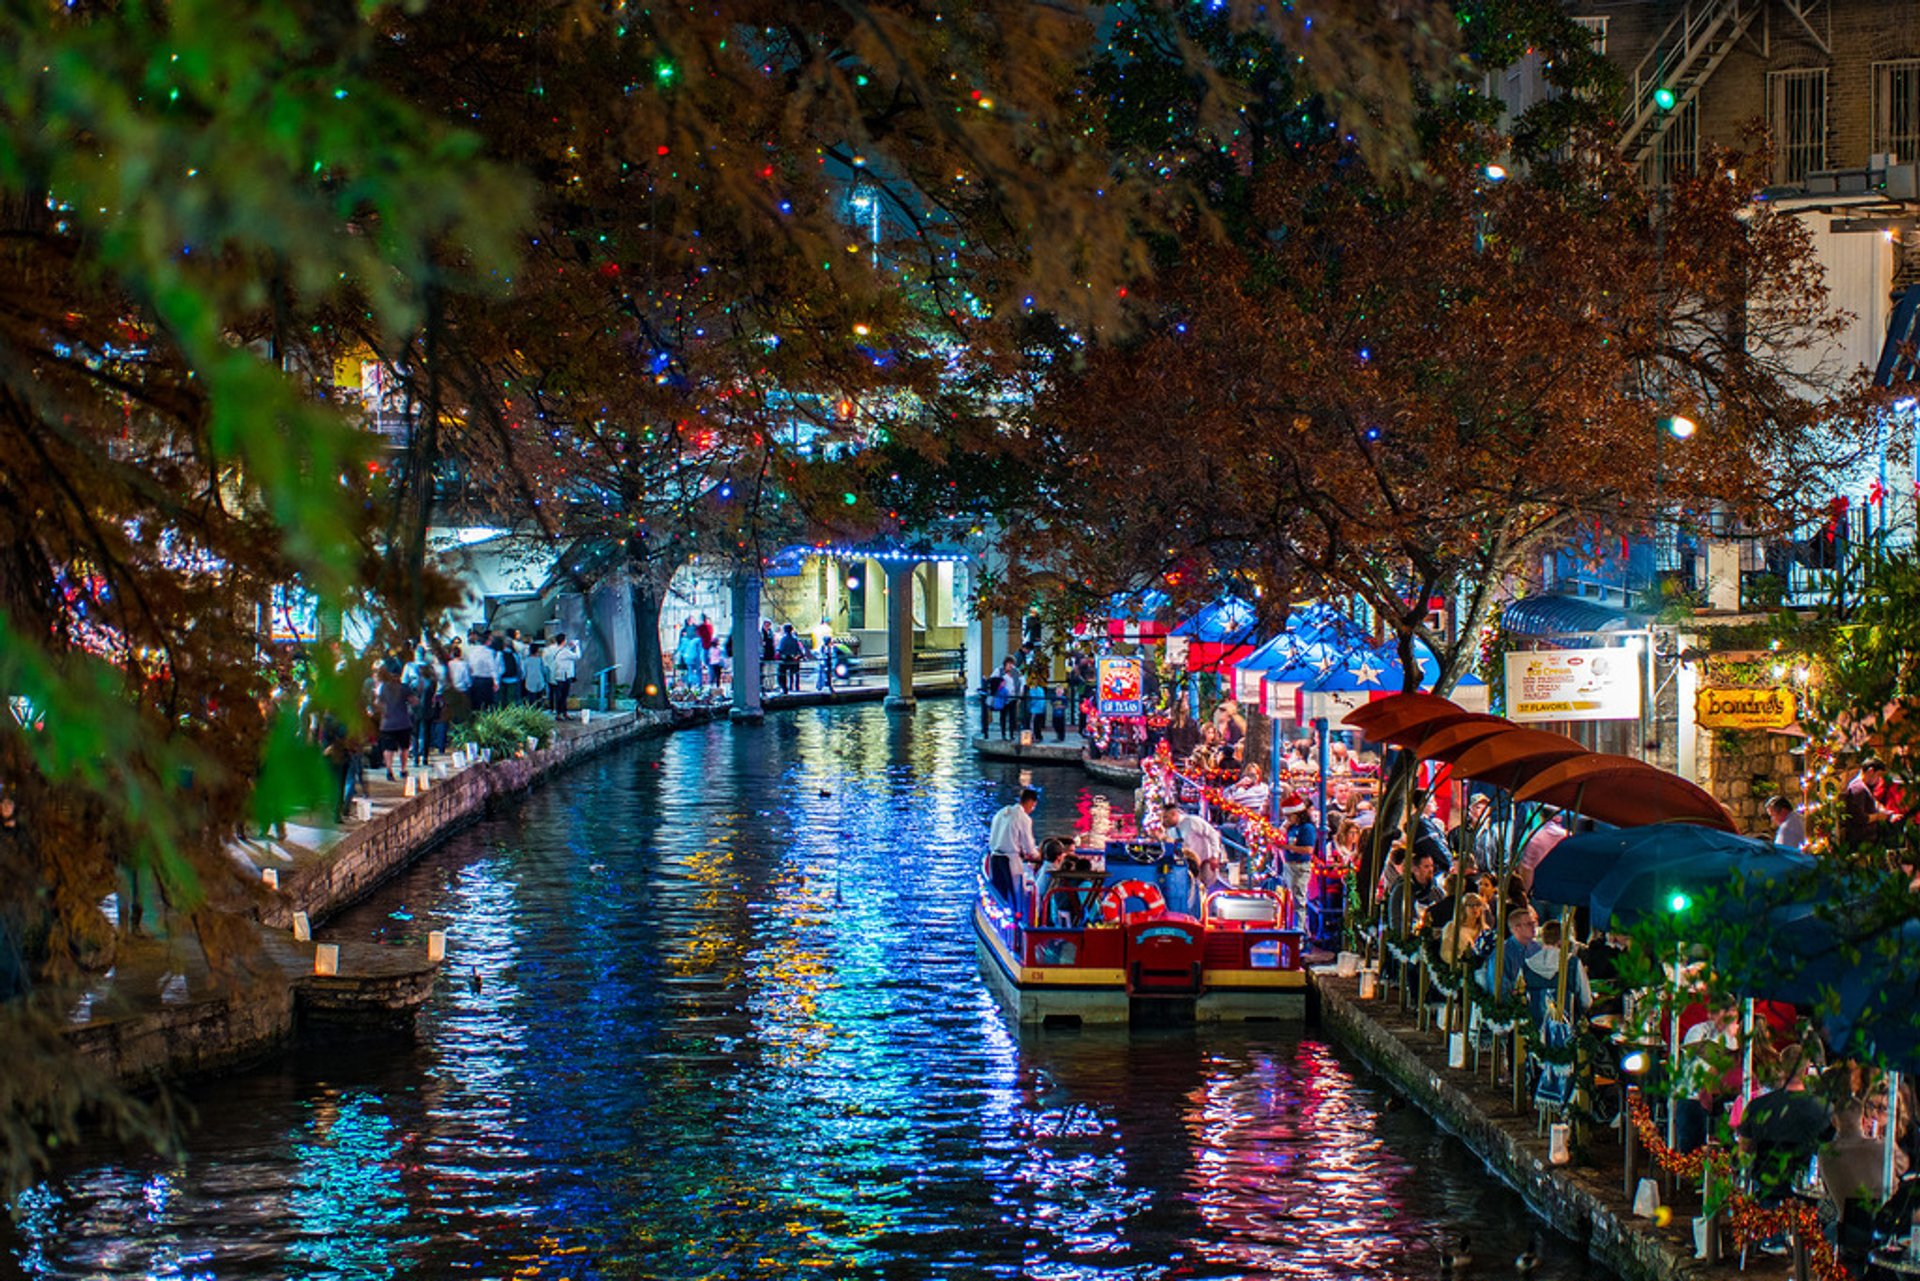 Ford Holiday River Parade in Texas - Best Season